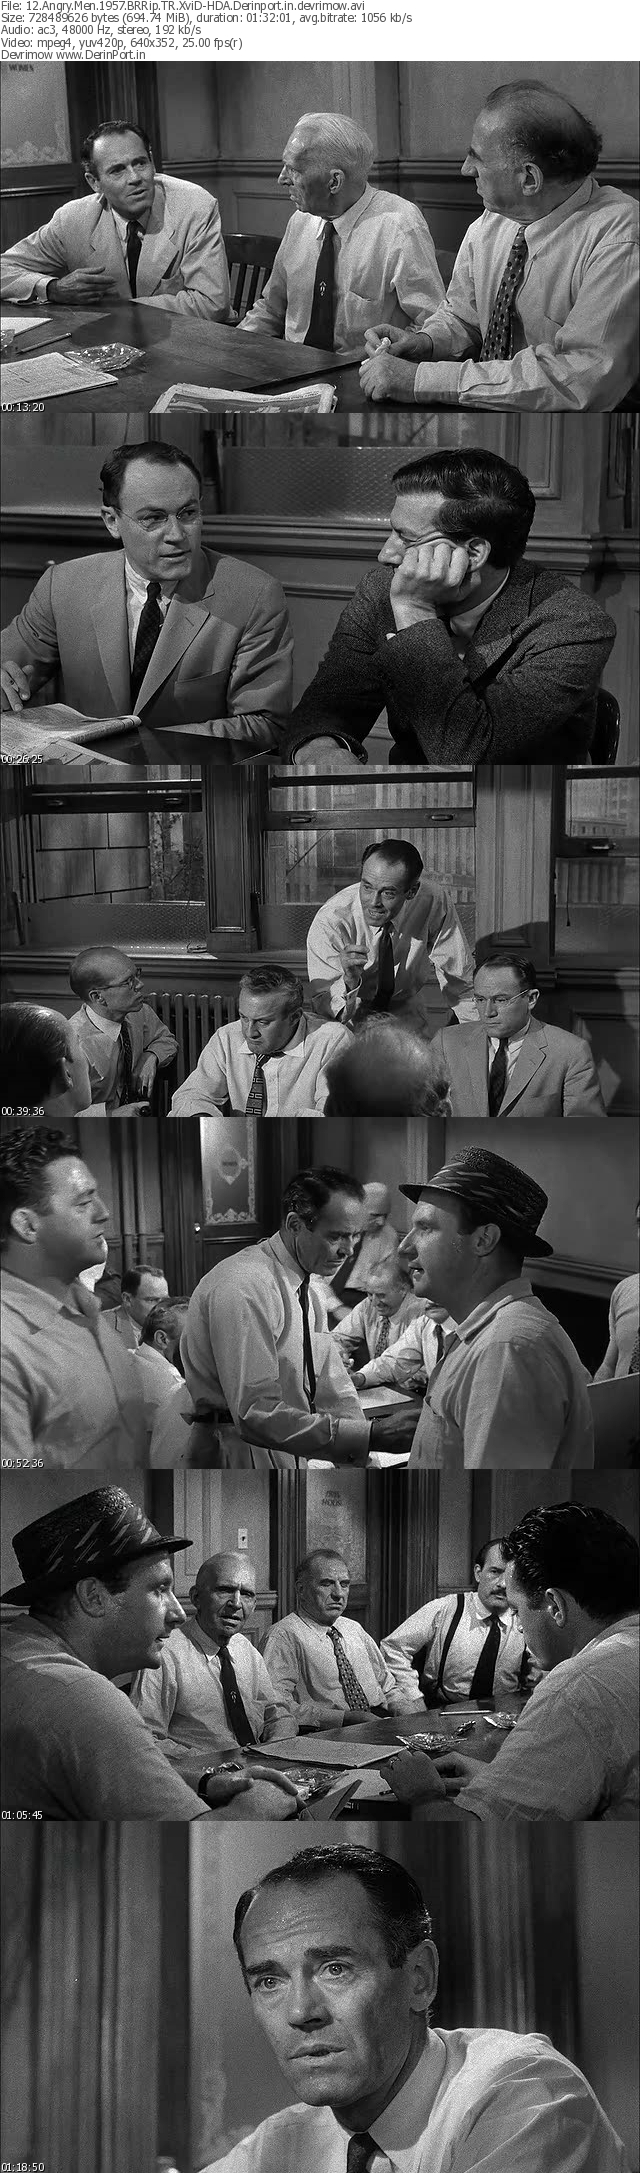 12 angry men implicit norms Papke author approved edits(h)(p) 11/16/2007 3:43 pm 735 12 angry men is not an archetype: reflections on the jury in contemporary popular culture david ray papke∗ introduction.